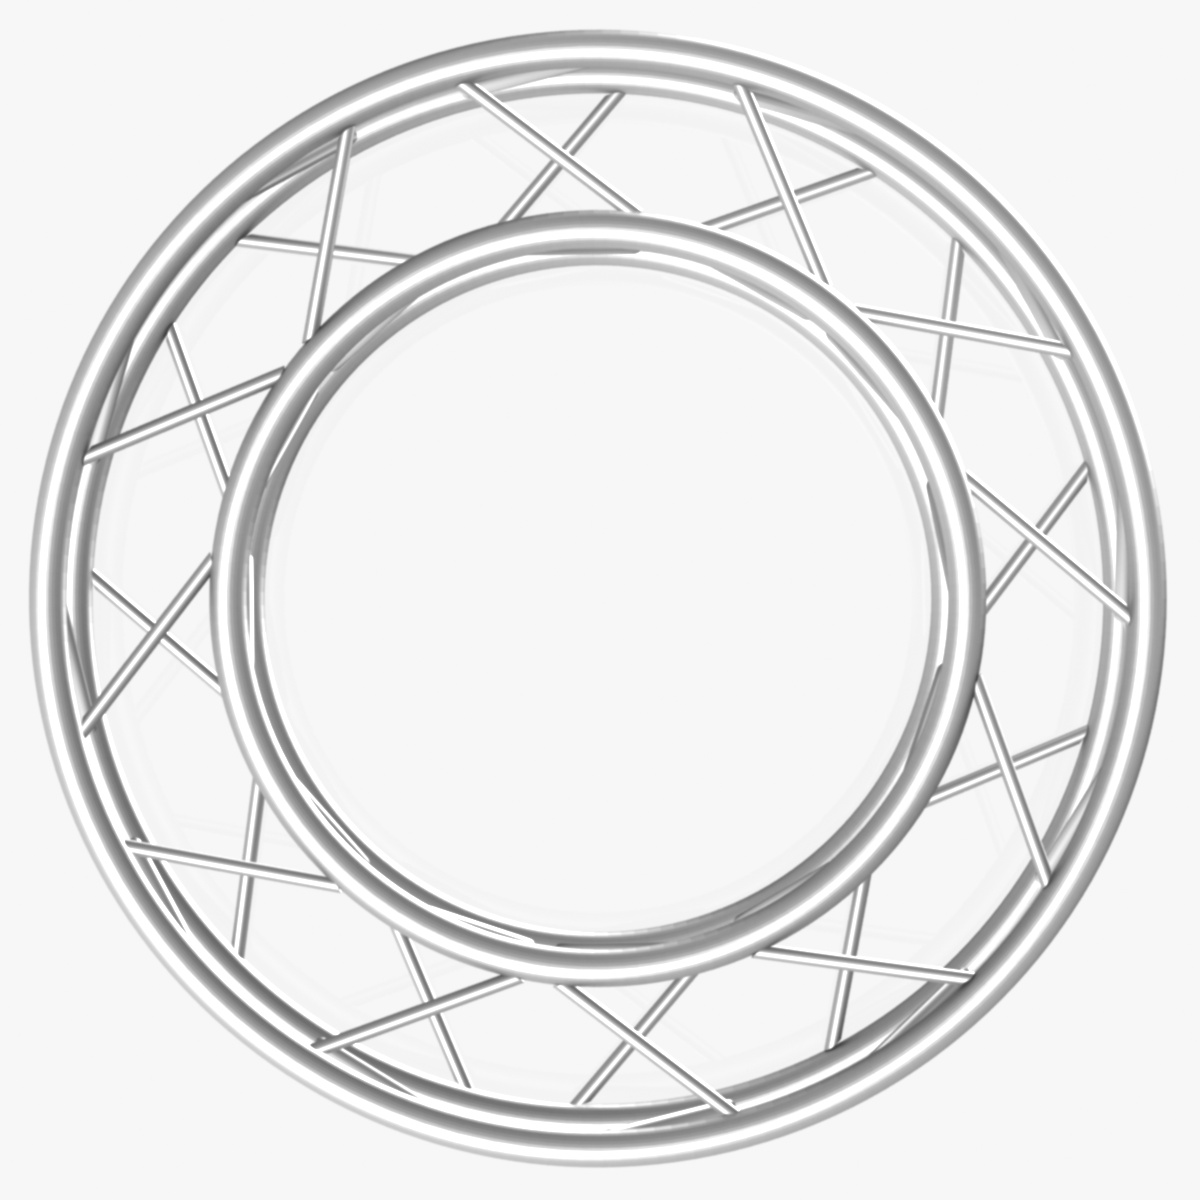 circle square truss full diameter 150cm 3d model 3ds max fbx c4d dae  obj 252294